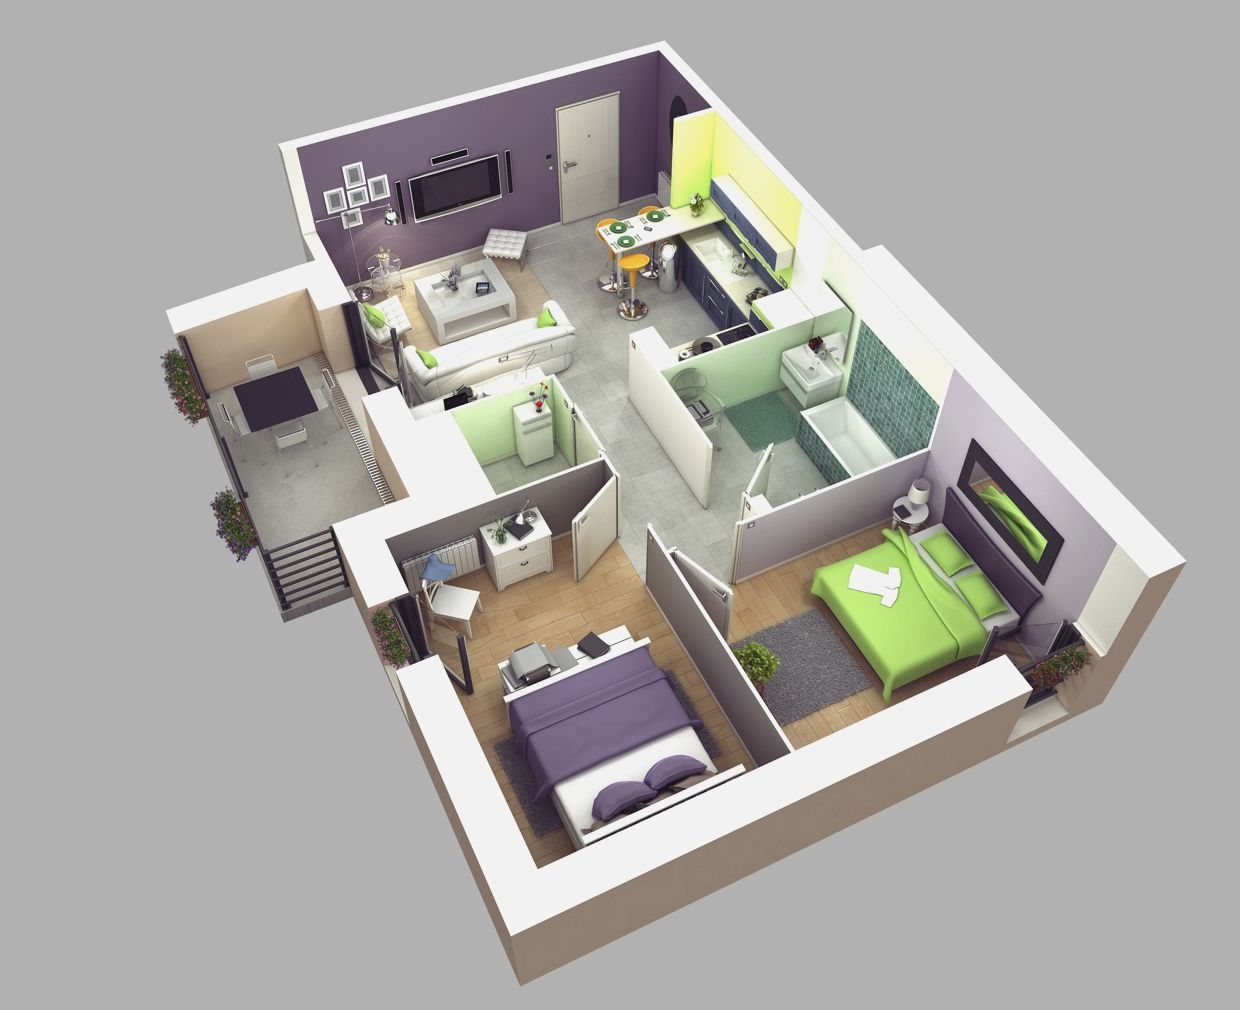 1 bedroom house plans 3d just the two of us apartment ideas pinterest bedrooms house - Plan of a two bedroom house ...